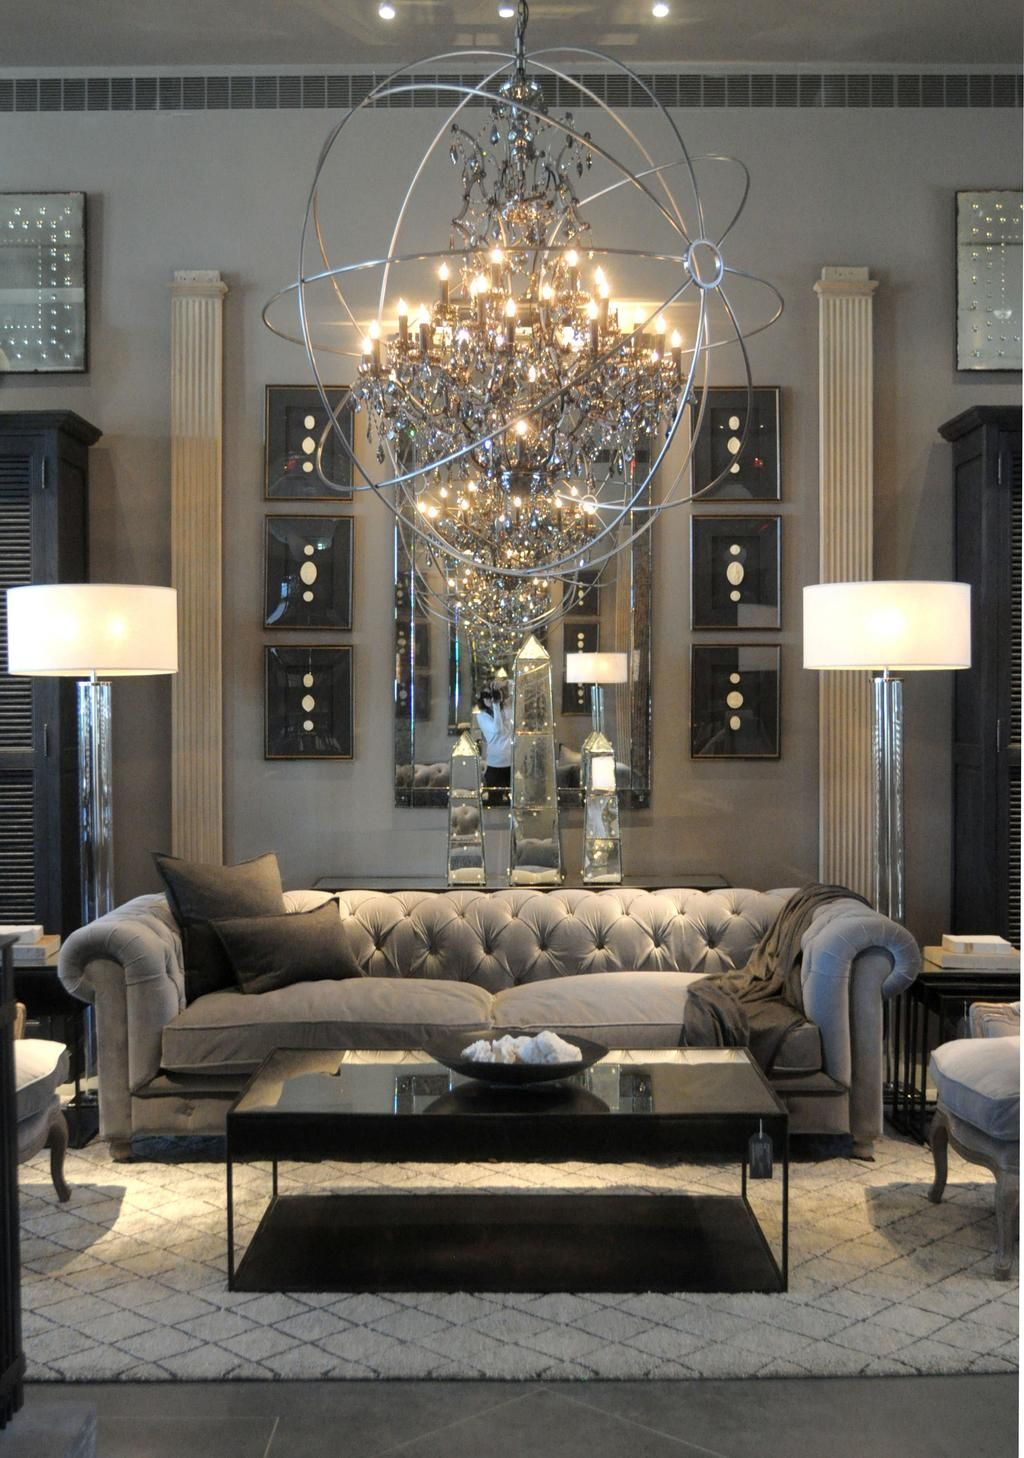 Modern Living Room Designs: 43 Modern Glam Living Room Decorating Ideas